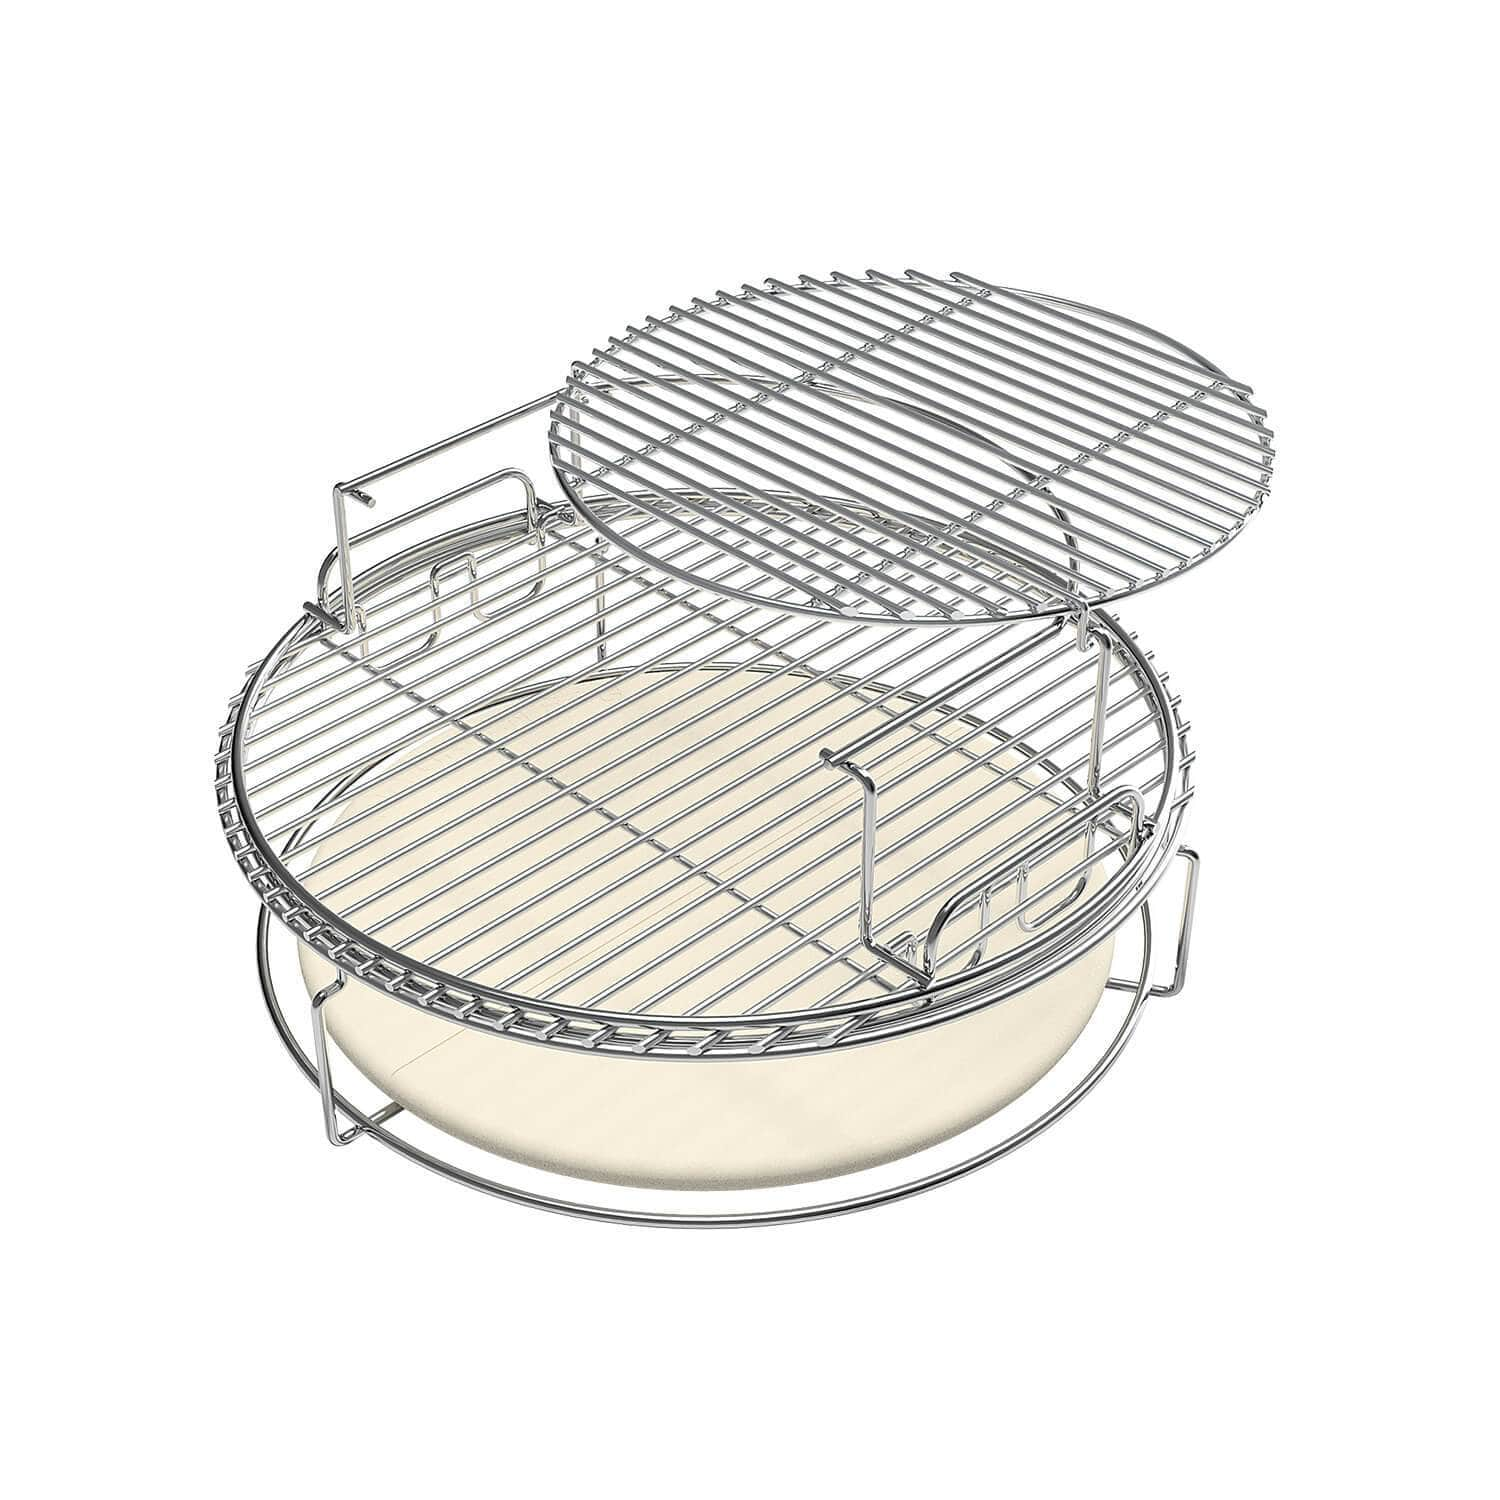 Big Green Egg Barbeque 5 Piece Eggspander Kit